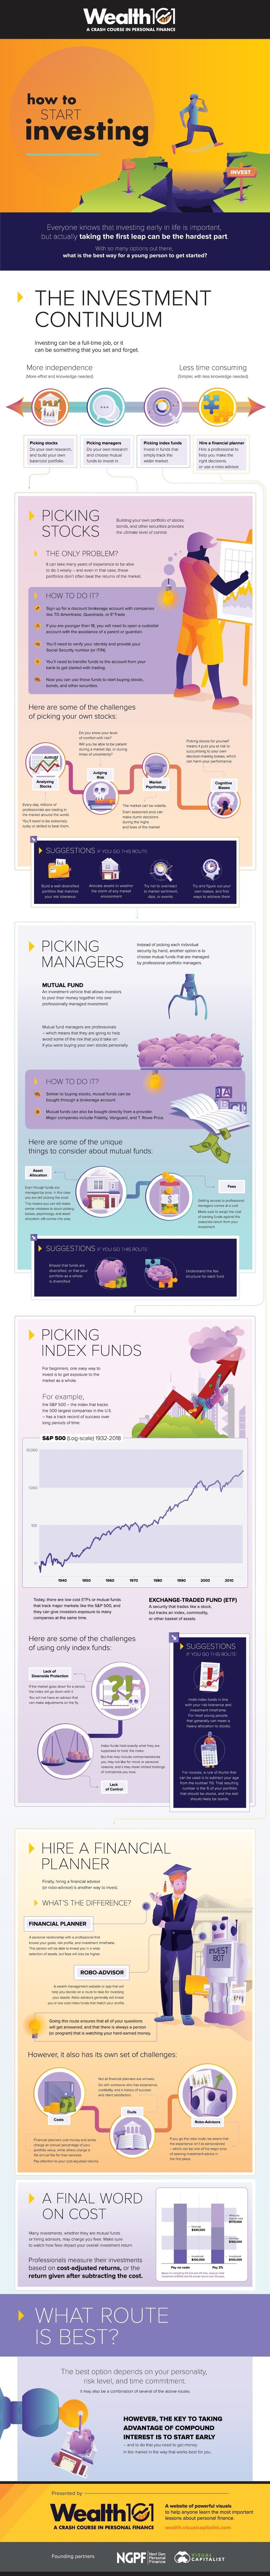 A Simple Guide: How to Start Investing #infographic